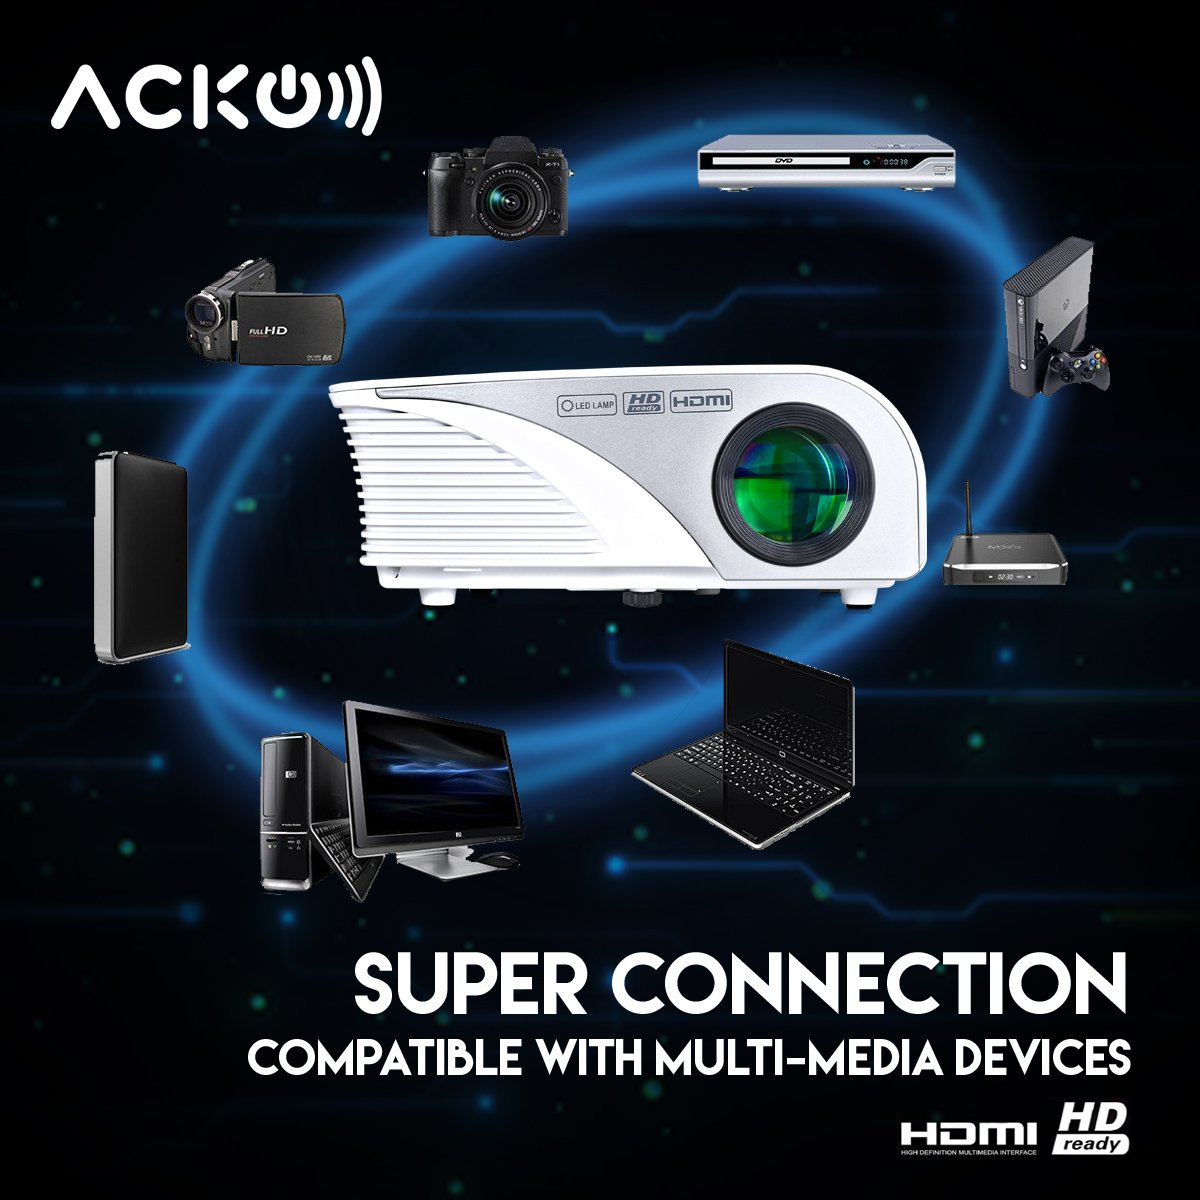 Acko Portable Mini HD LED Video Projector Office Home Theater 1200 LM Multimedia Outdoor 20''-150'' HDMI VGA USB AV SD Audio 1080P Smart Phone Tablet PC Computers Laptops White Warranty Included by EpandaHouse (Image #5)